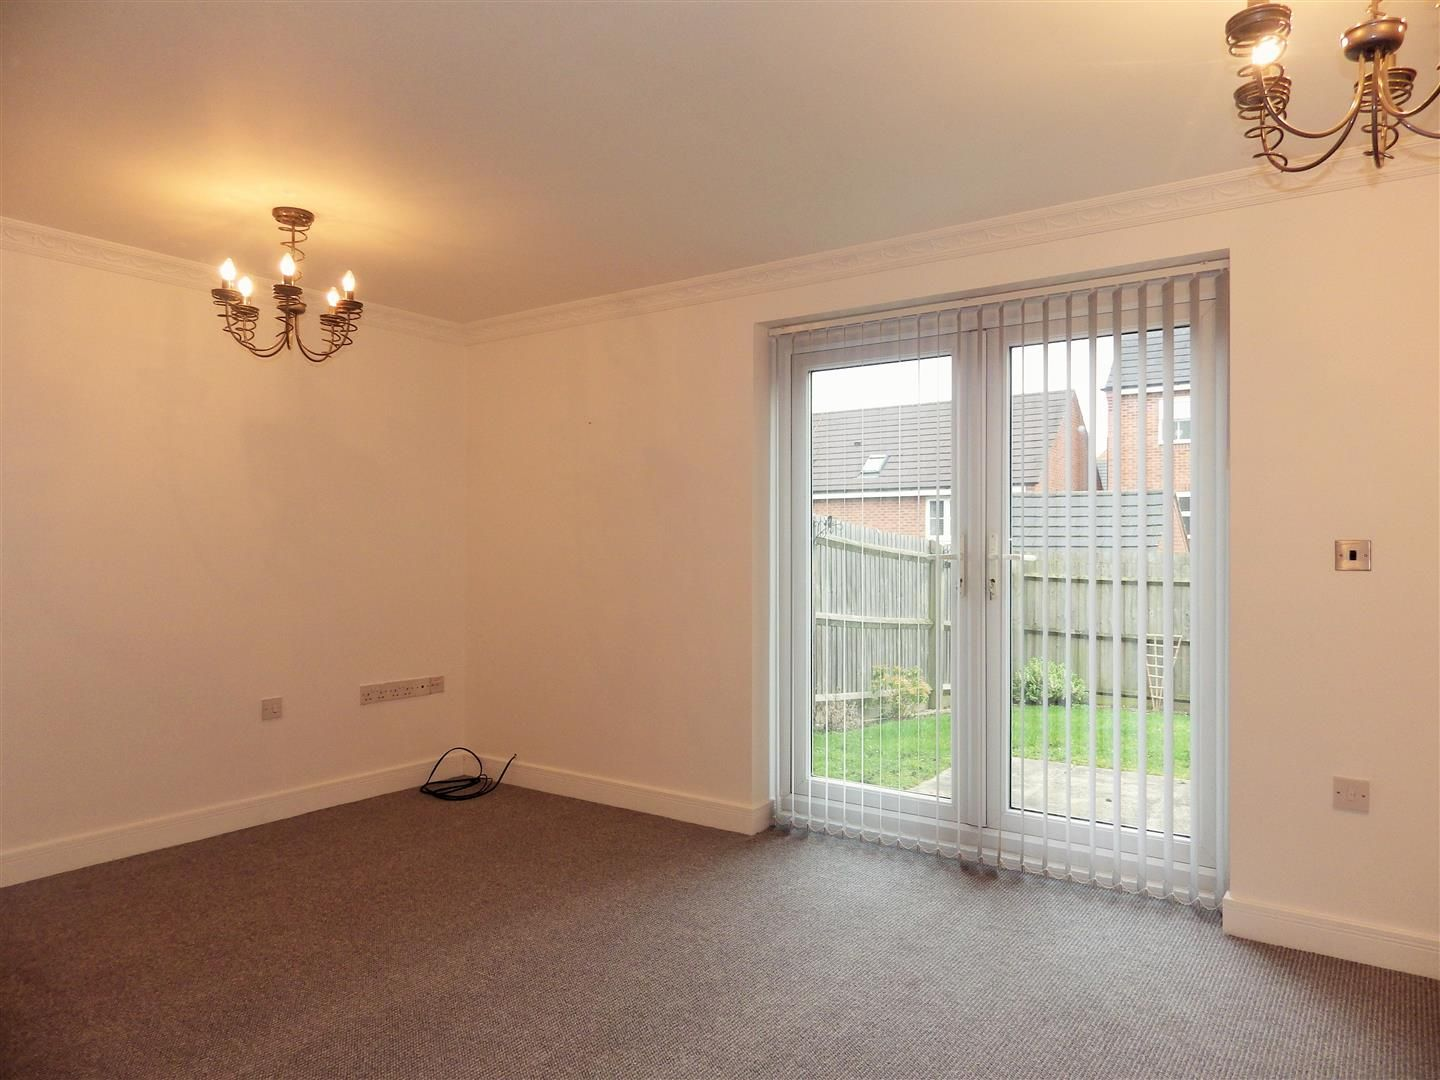 2 bed flat for sale  - Property Image 2